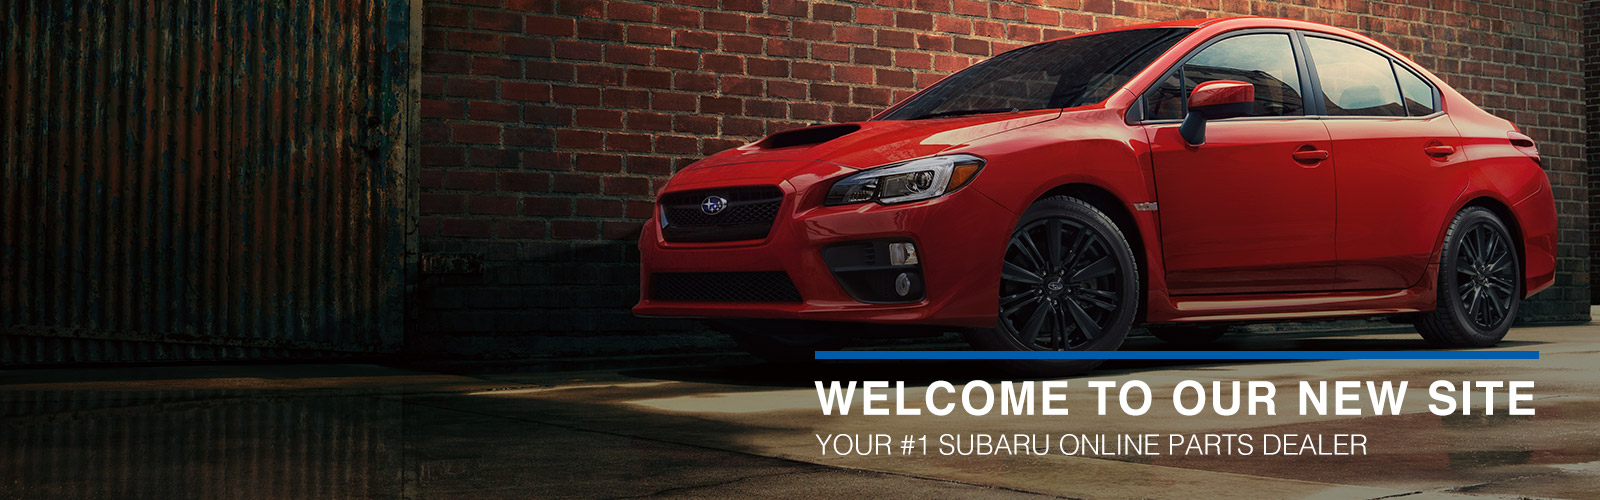 Welcome to subarupartsforyou.com